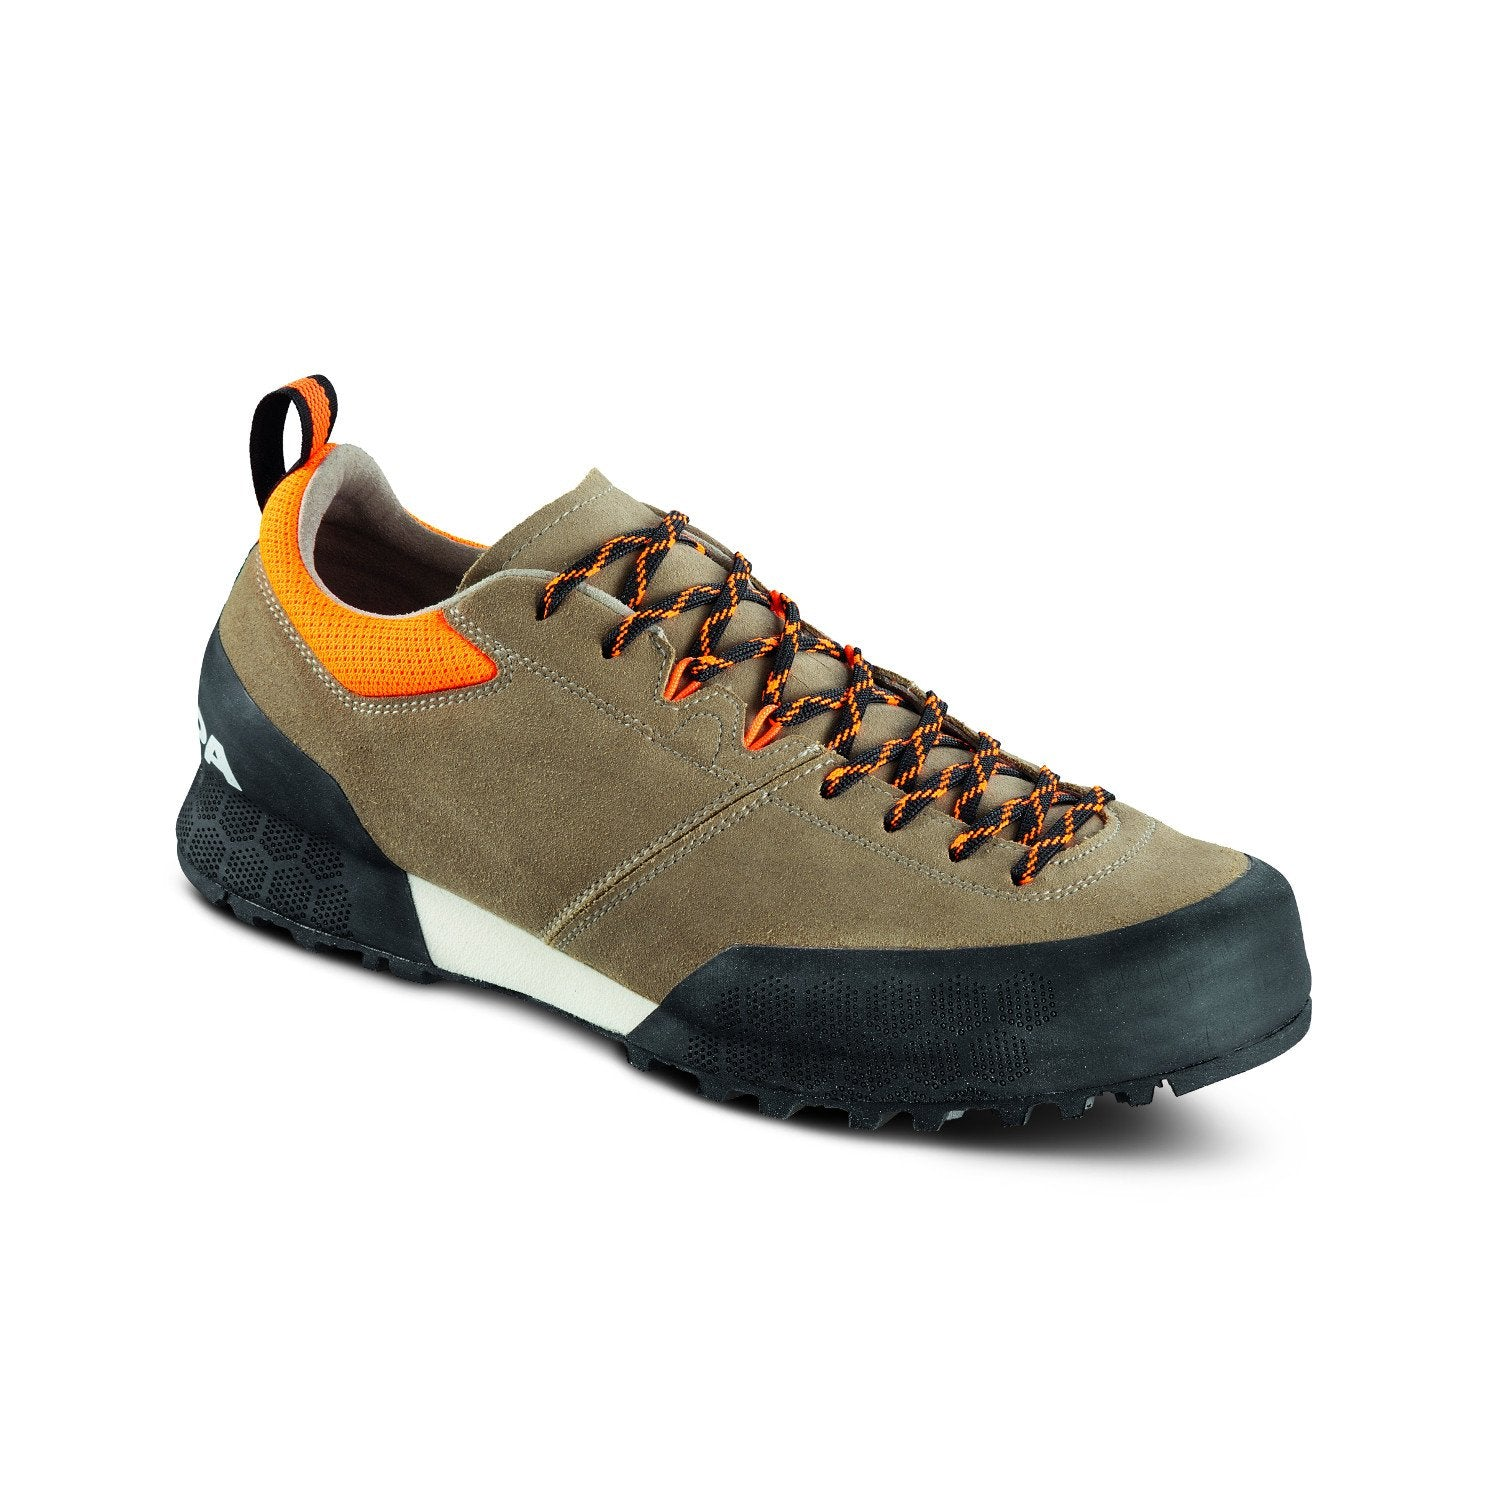 The Scarpa Kalipe Approach Shoe, front/side view in Beige and Orange